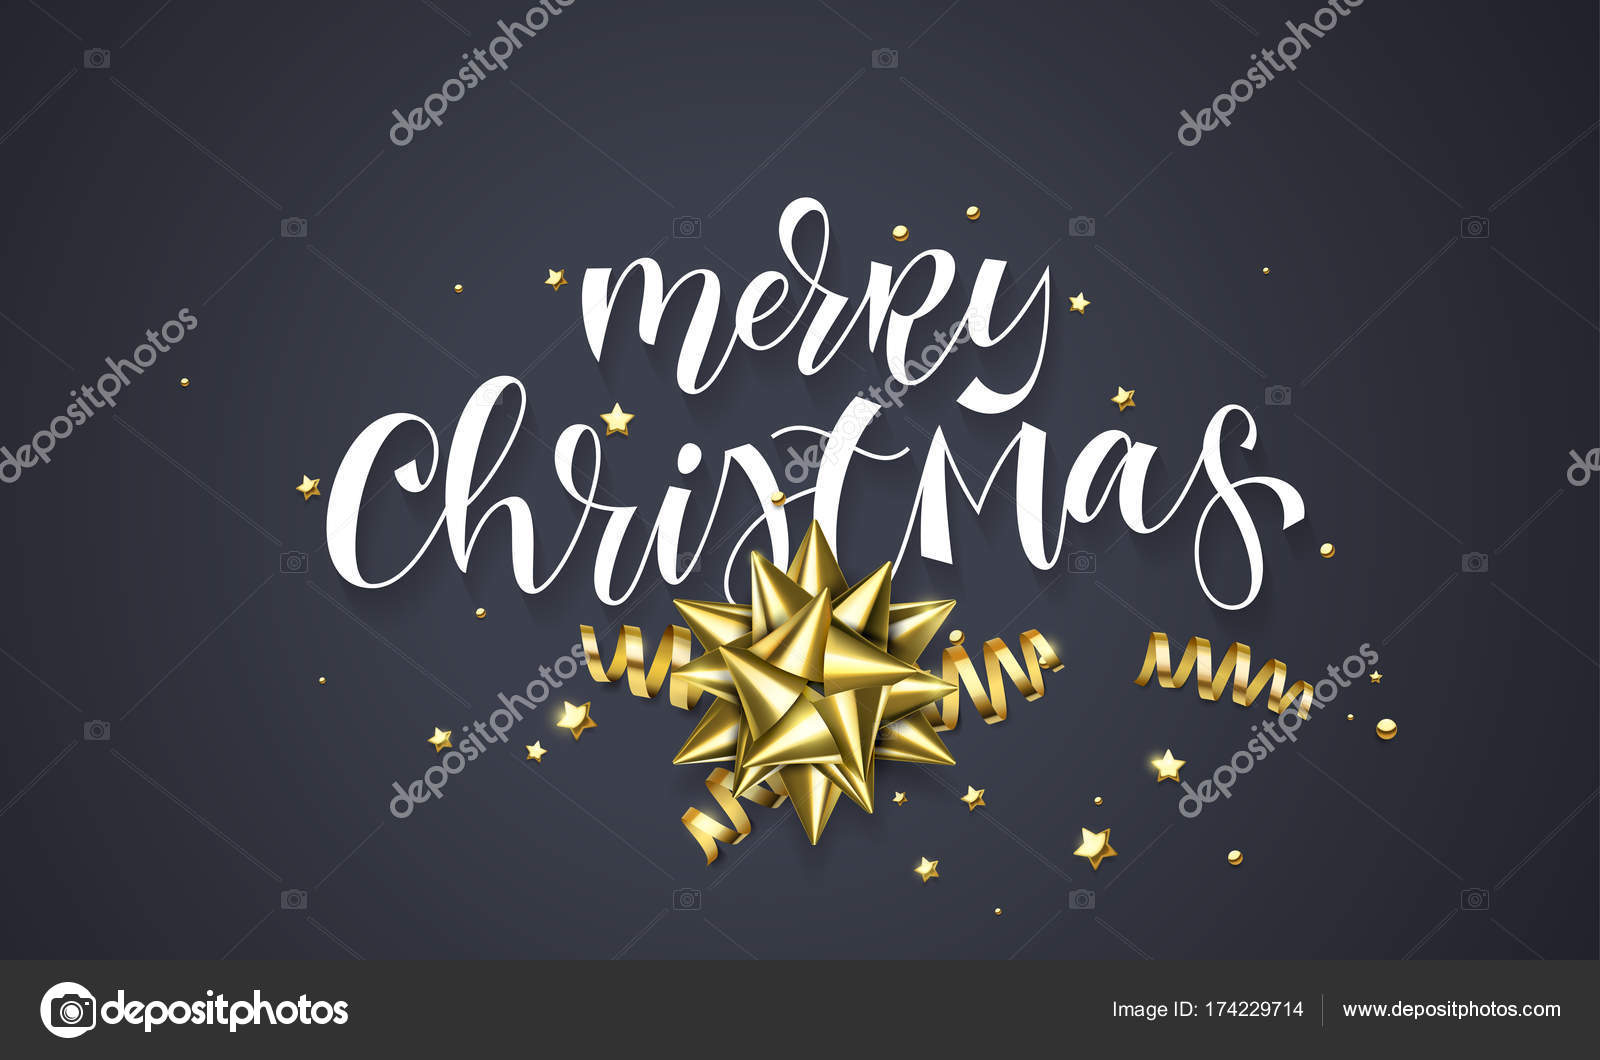 merry christmas greeting card background design template of golden